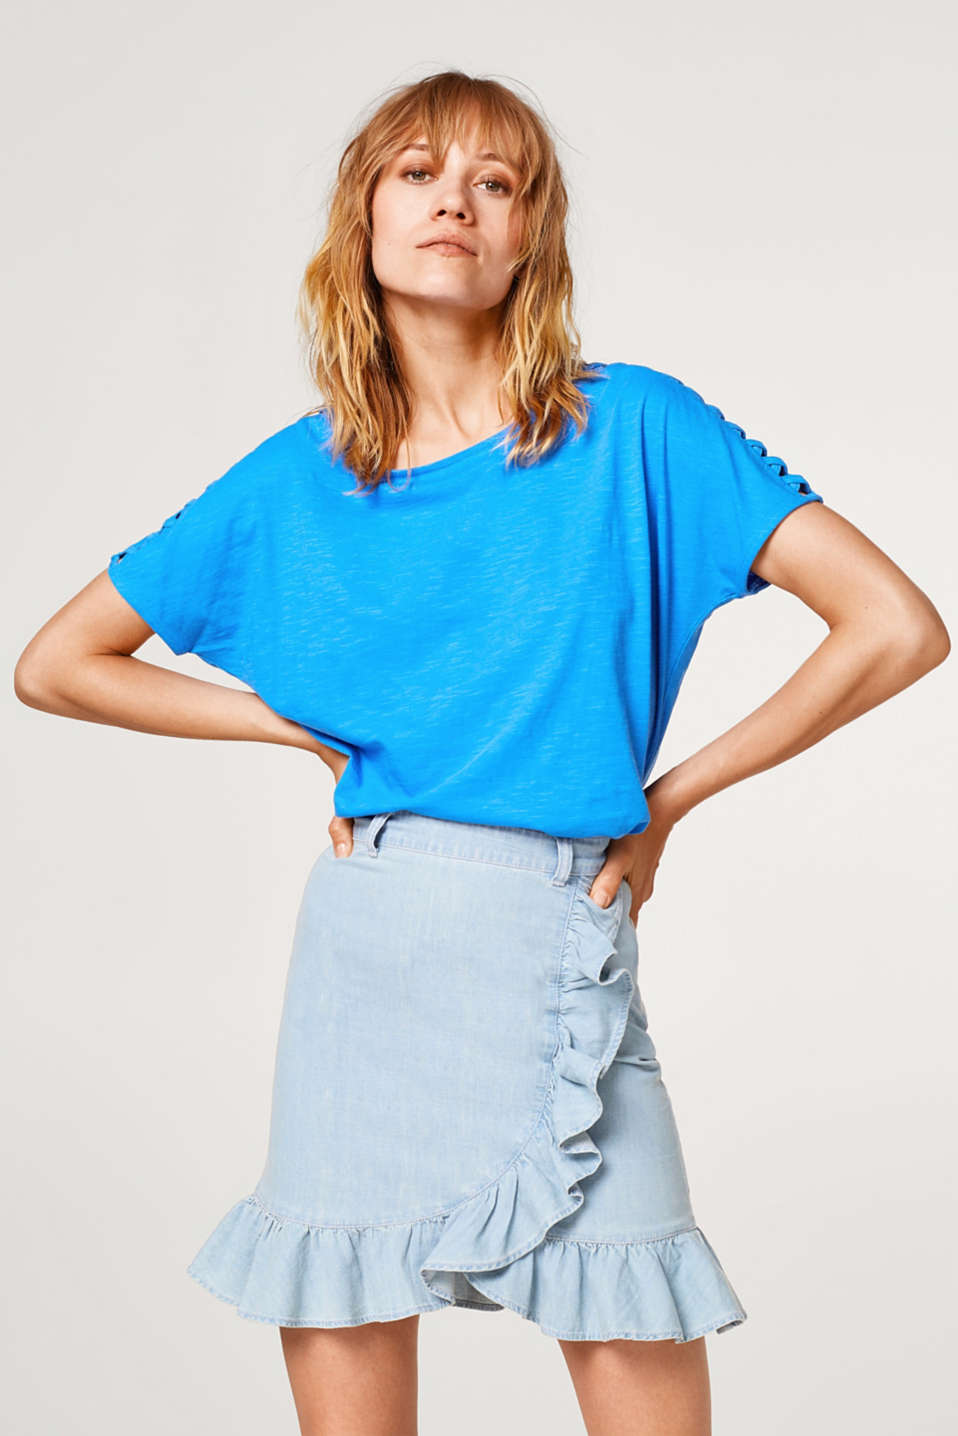 Esprit - Slub top with cut-out details, 100% cotton